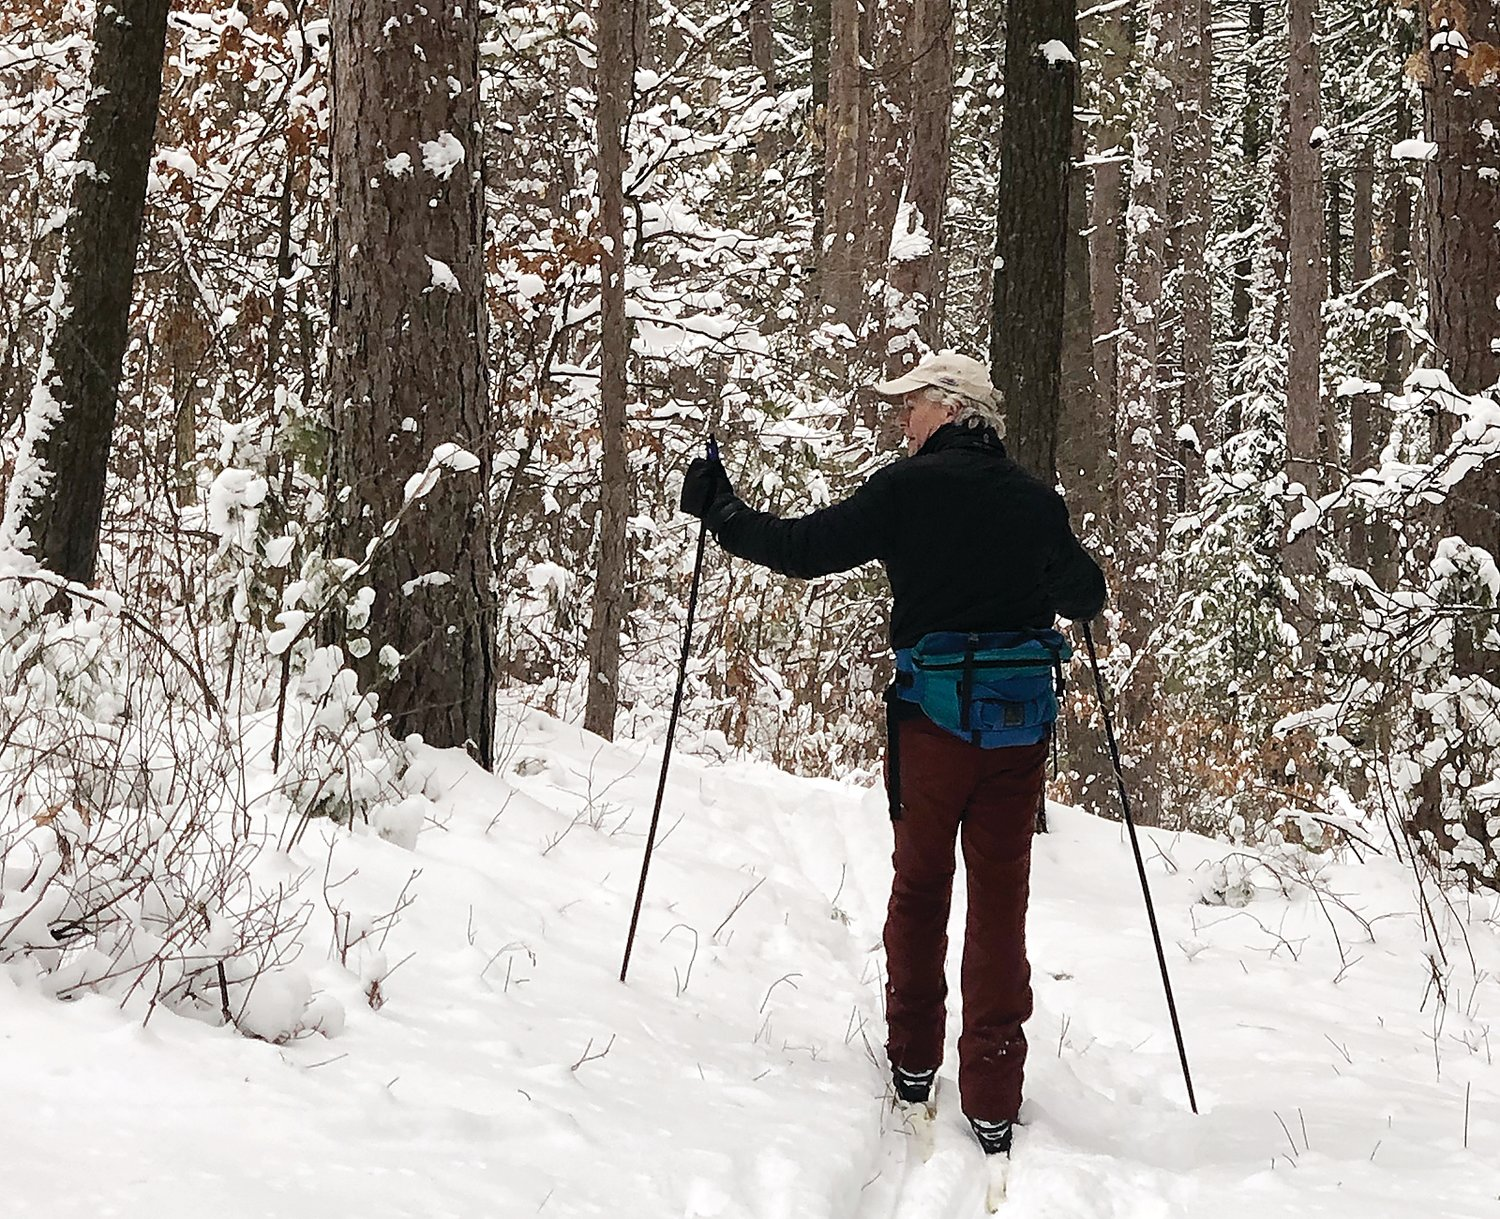 Skiing through miles of pine forest along the North Arm Trails.